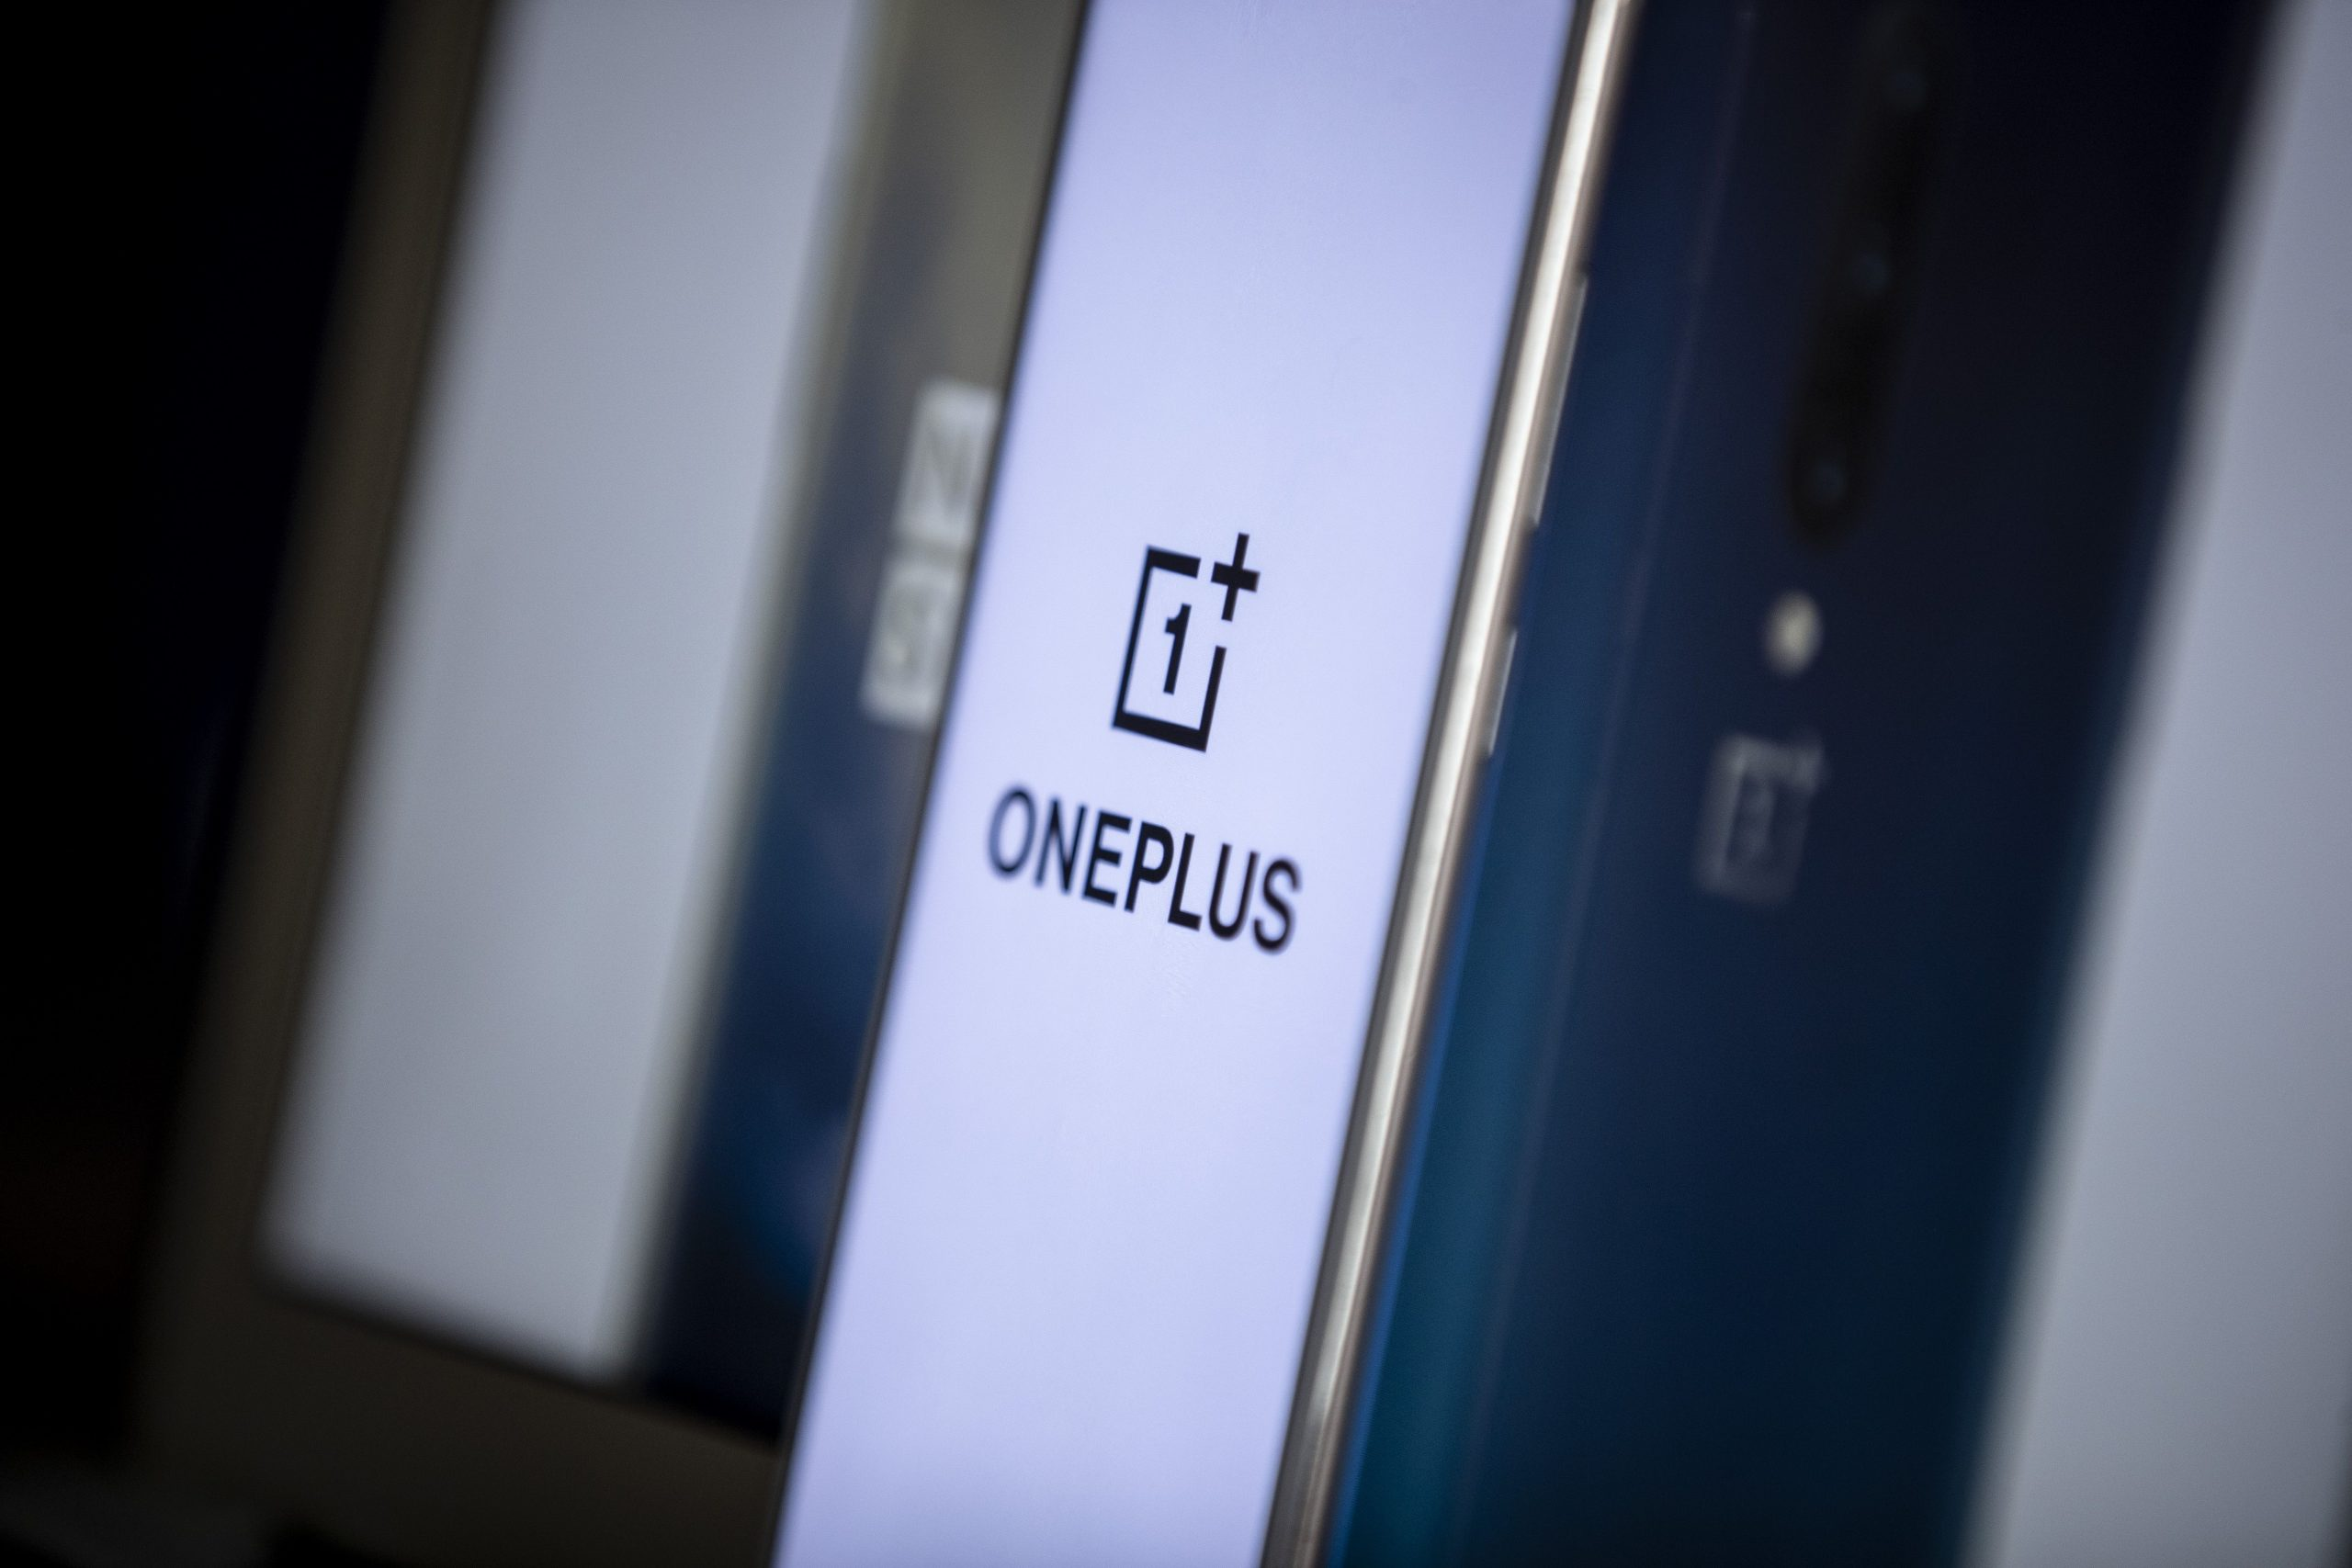 OnePlus will reveal its first smartwatch on March 23rd